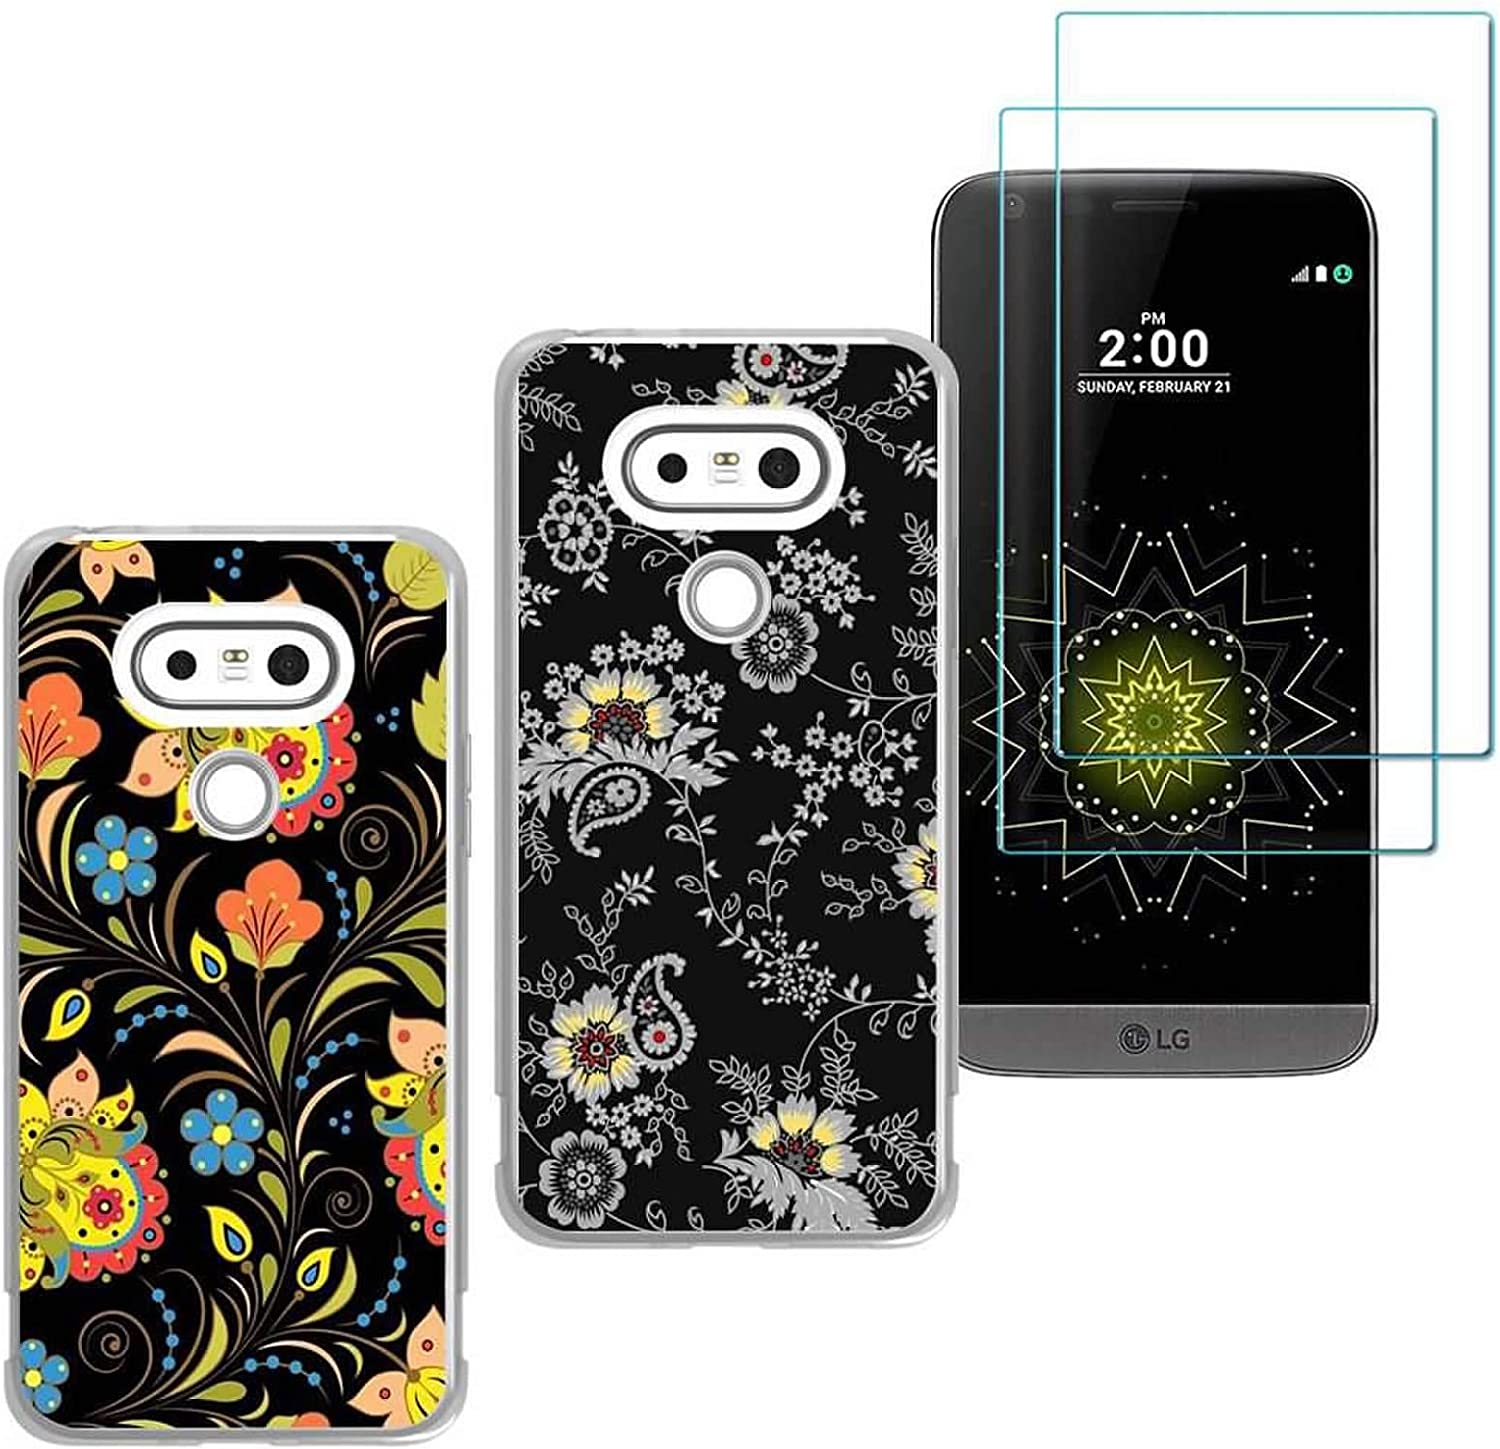 2 X LG G5 Case with 2 Pack Glass Screen Protector Phone Case for Men Women Girls Clear Soft TPU with Protective Bumper Cover Case for LG G5